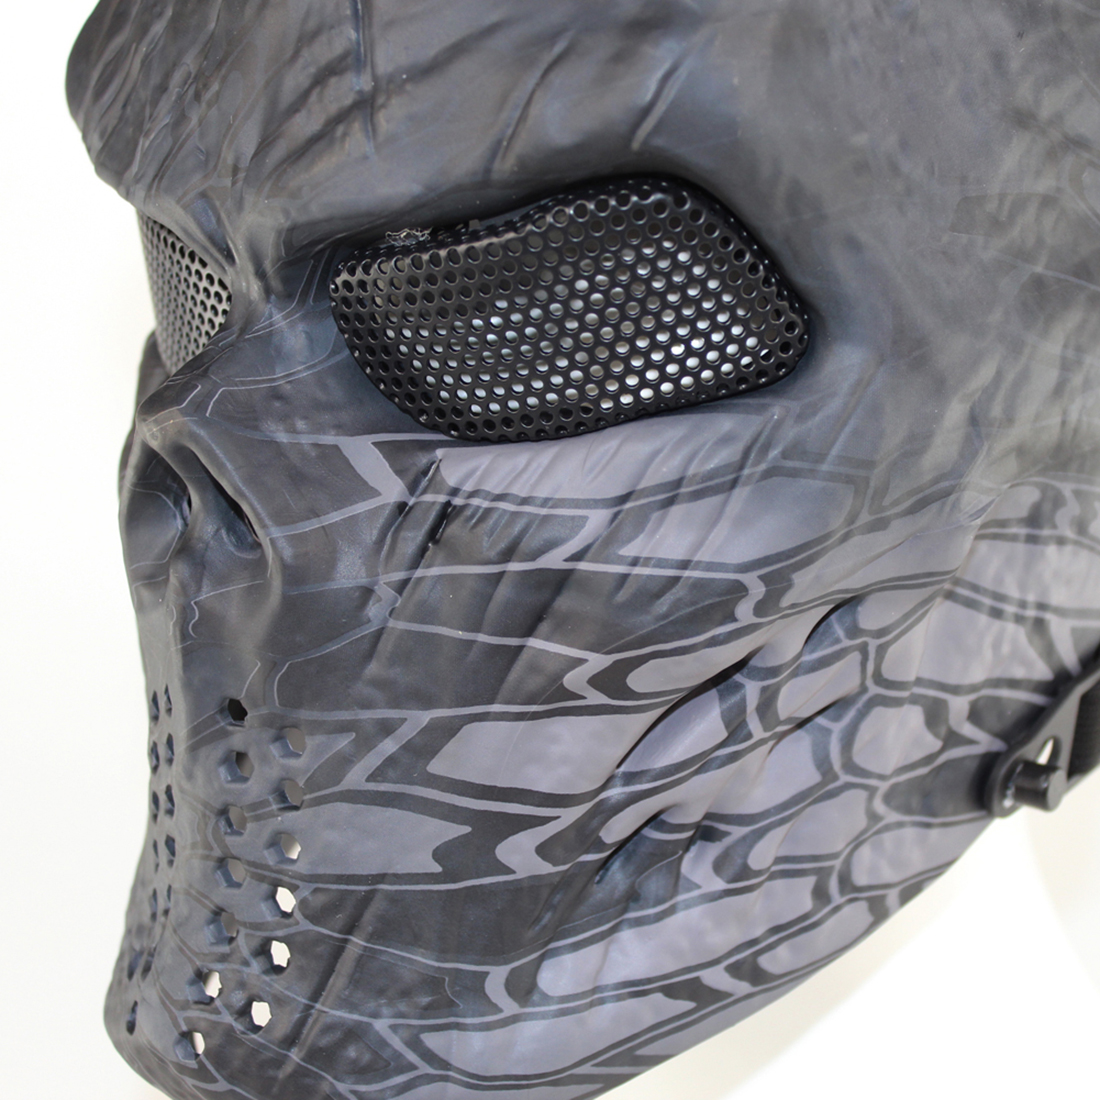 Surwish Iron Blood Skull Mask Tactical Mask for Nerf/for Airsoft/ for Wargame Halloween Dancing Party цена